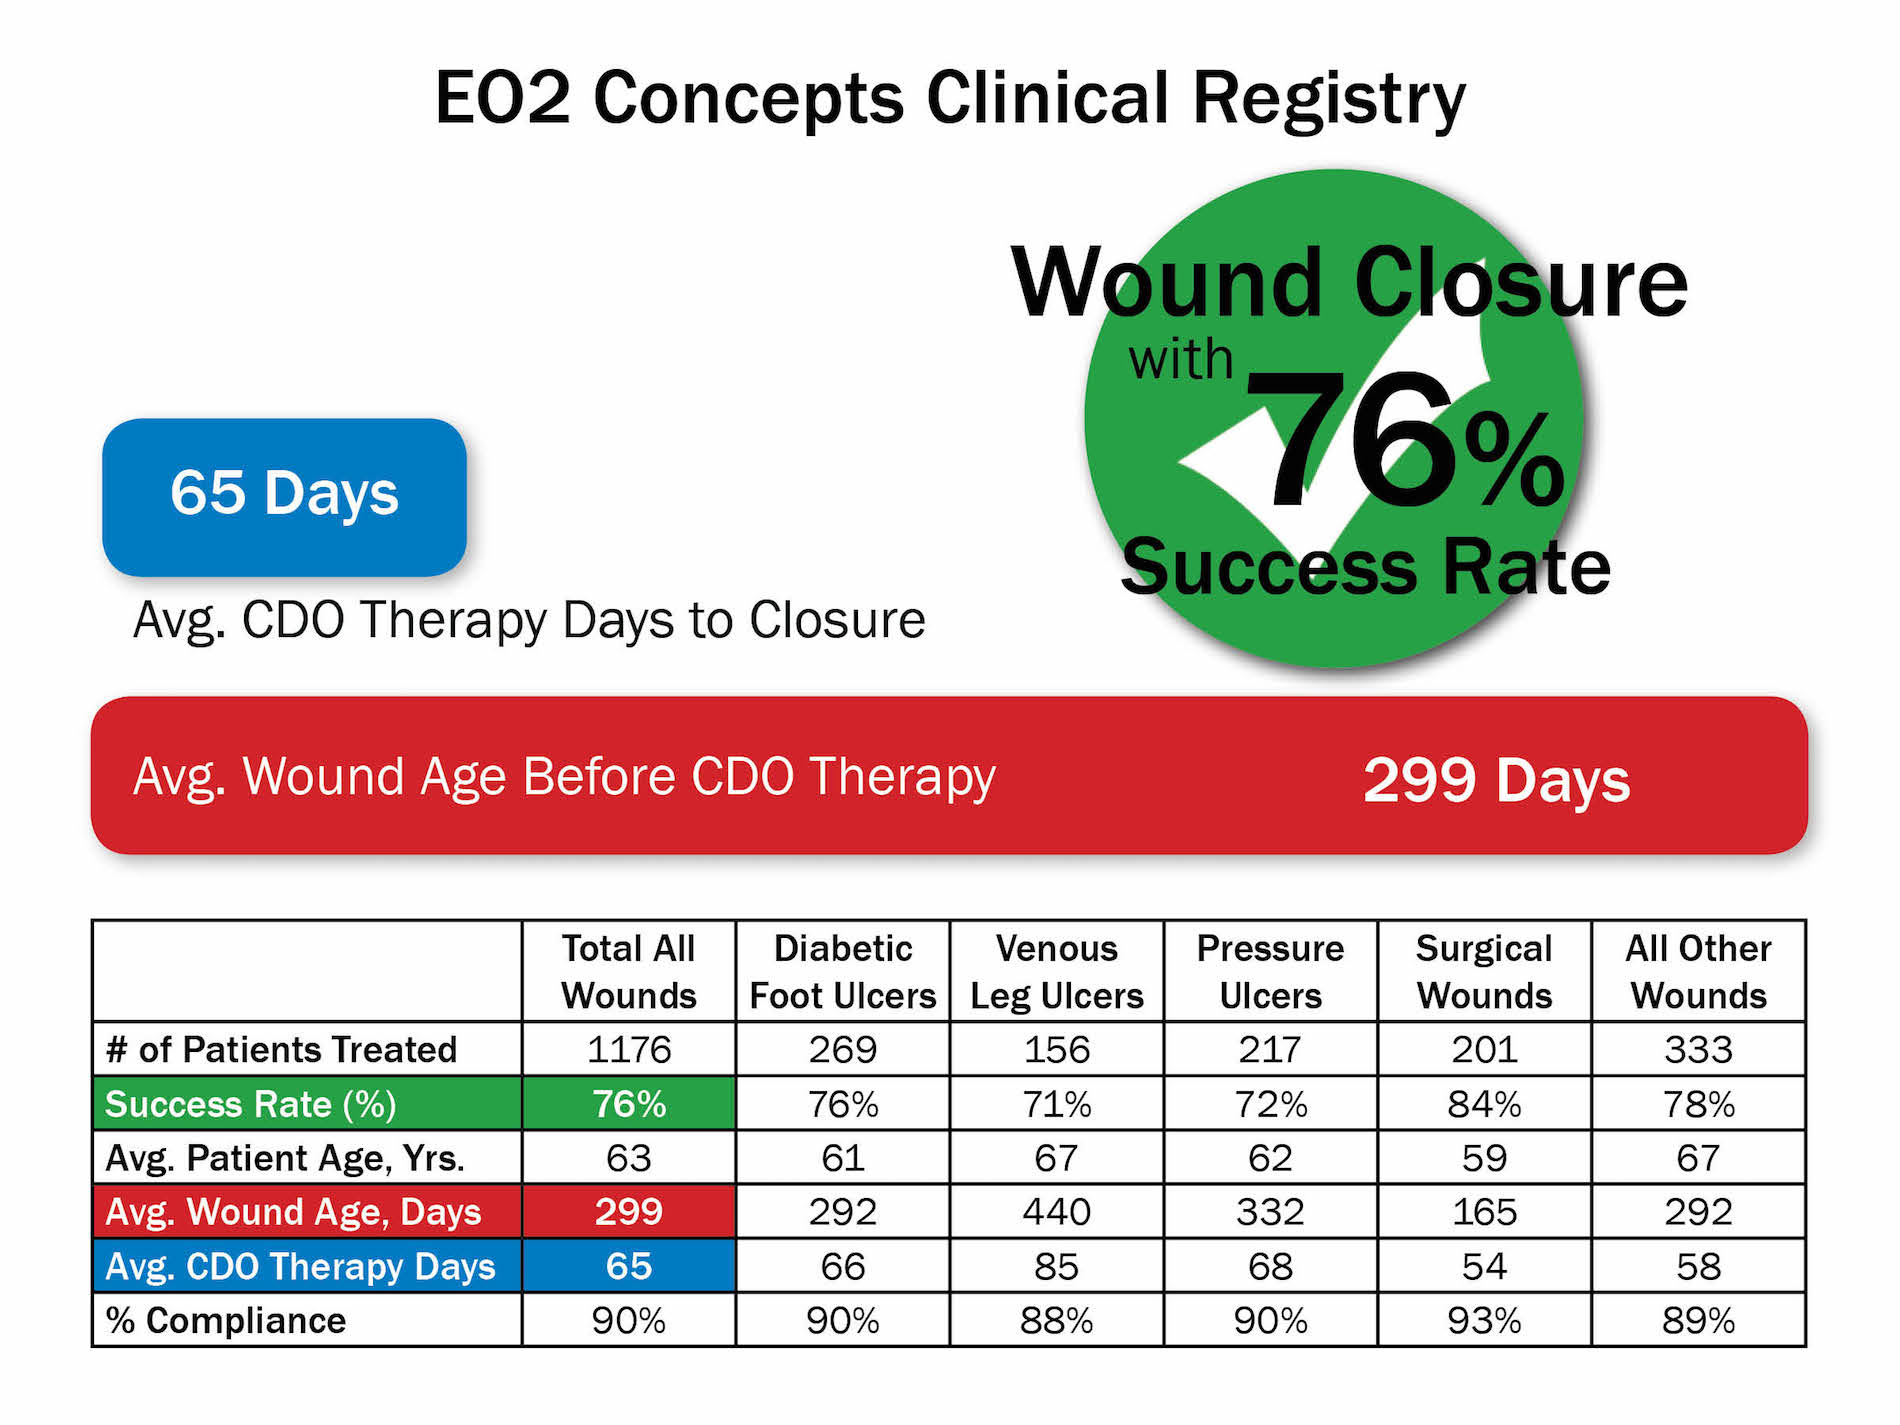 Our Clinical Registry